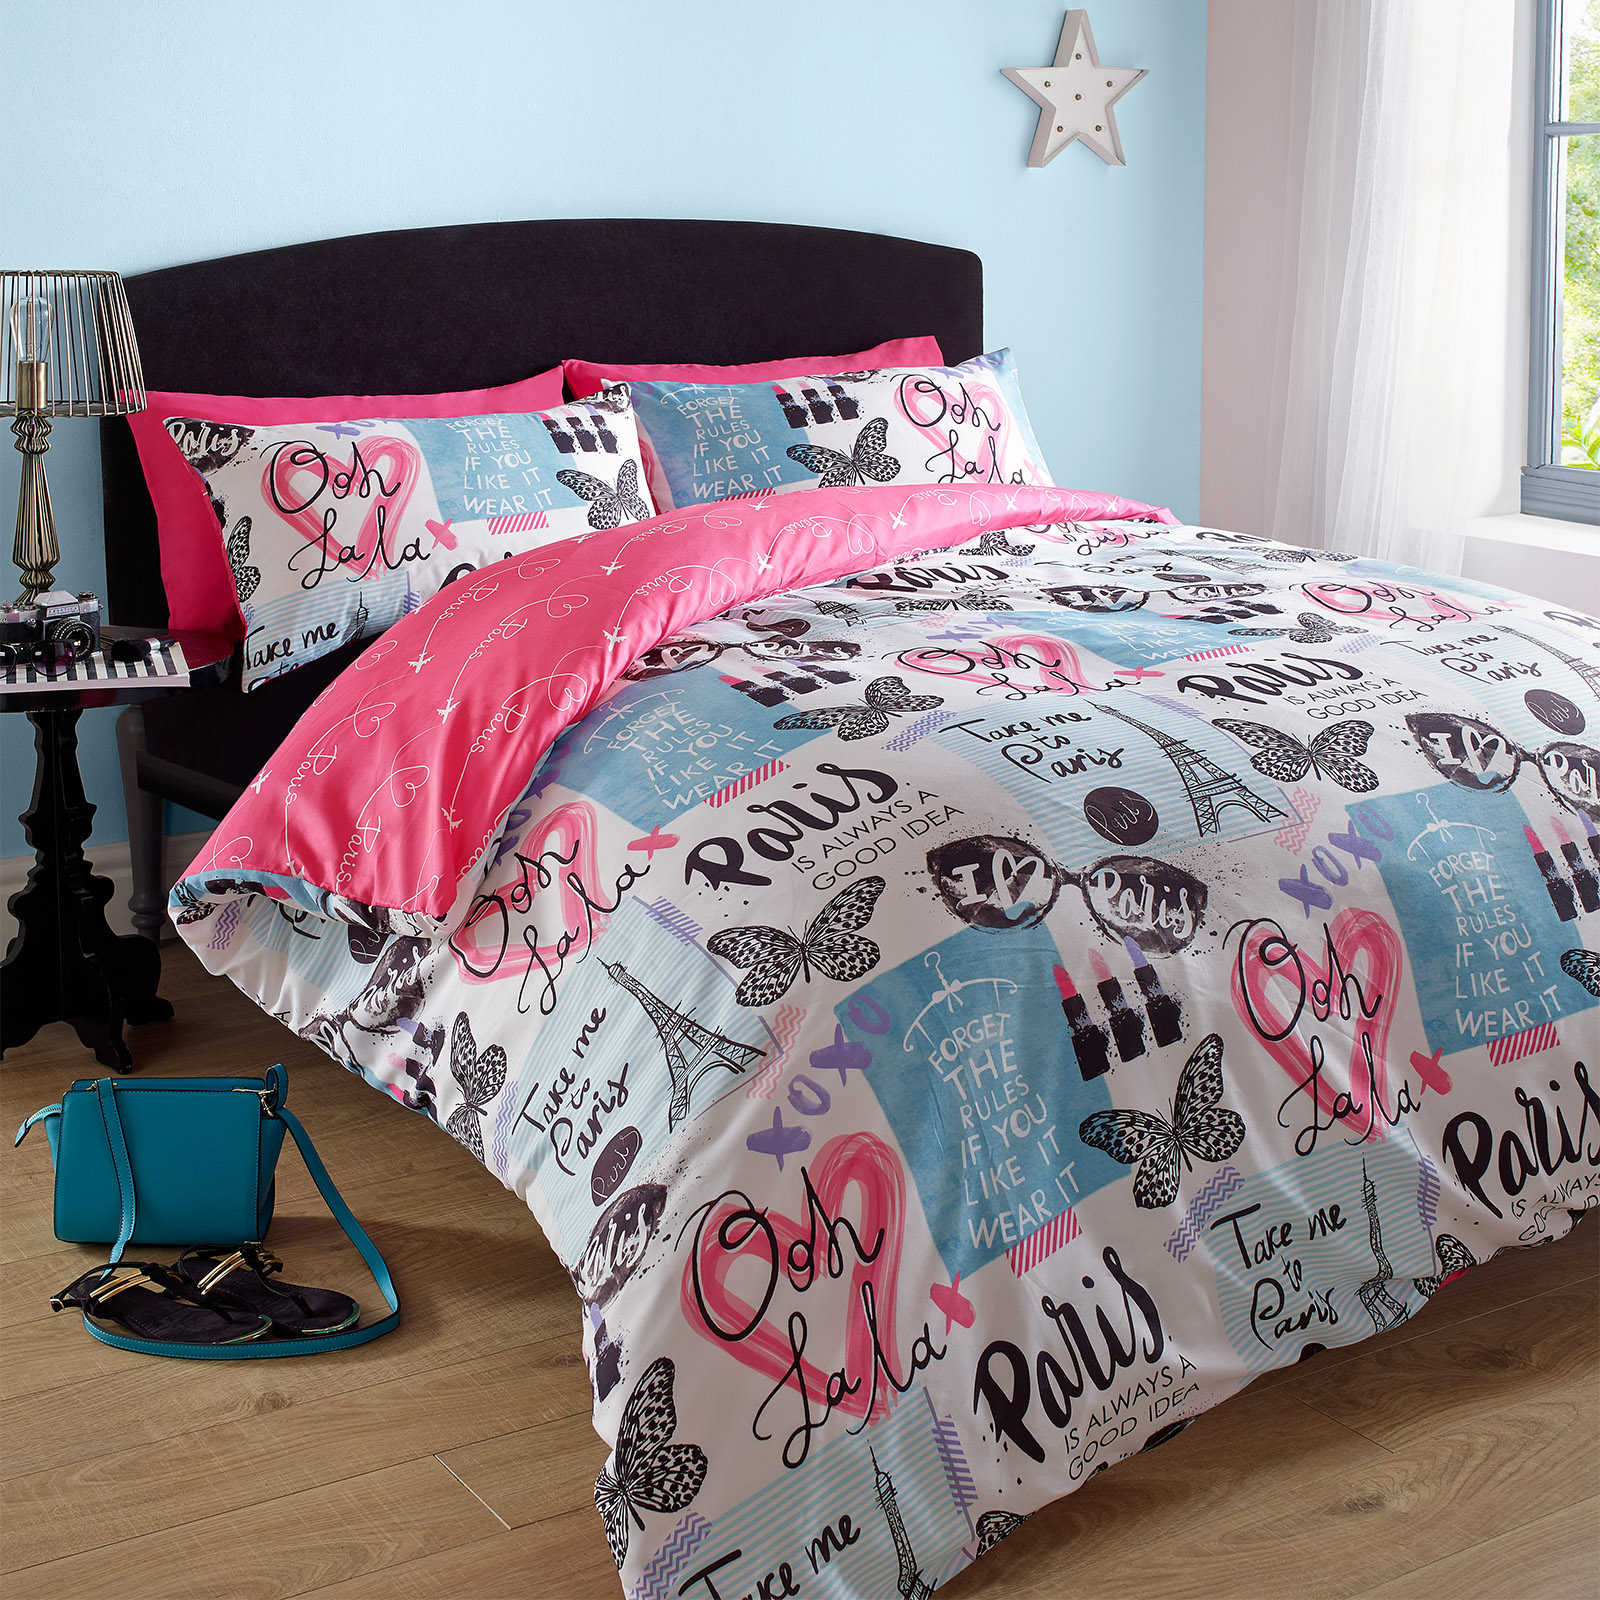 Duvet Cover With Pillowcase Paris Eiffel Tower Pink Blue